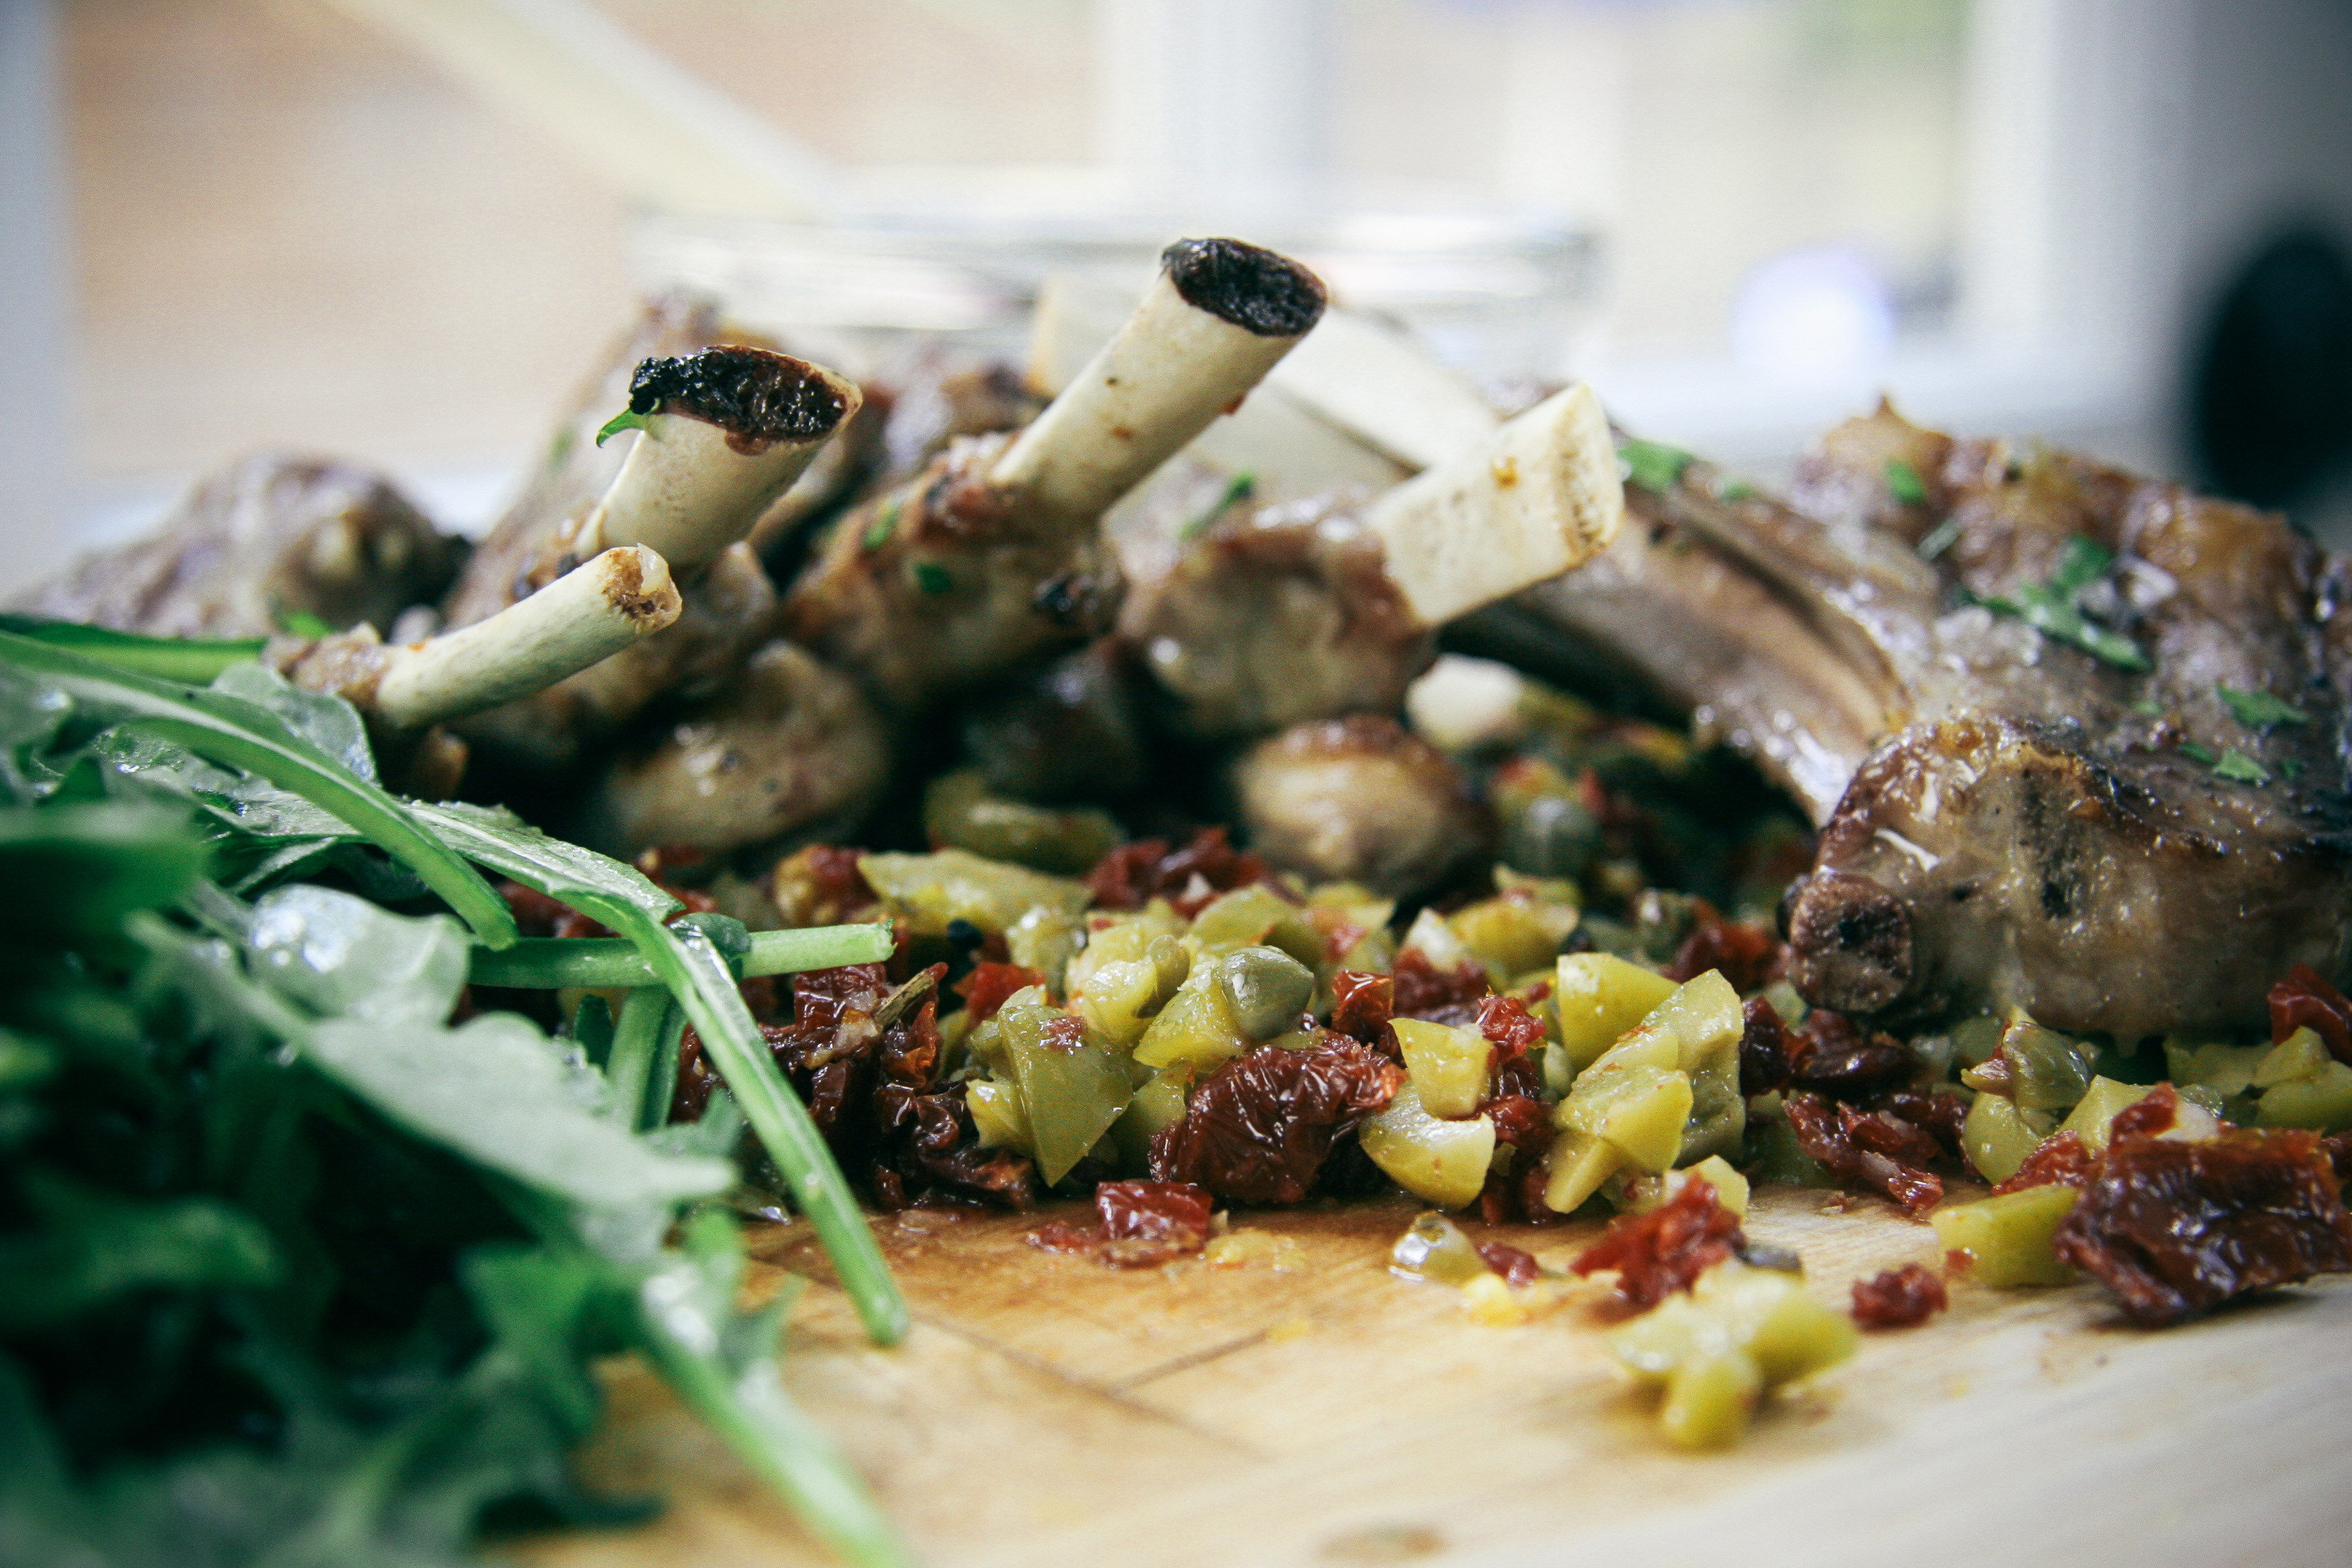 Grilled Lamb Chops with Olive and Sun Dried Tomato Tapenade | I Will Not Eat Oysters